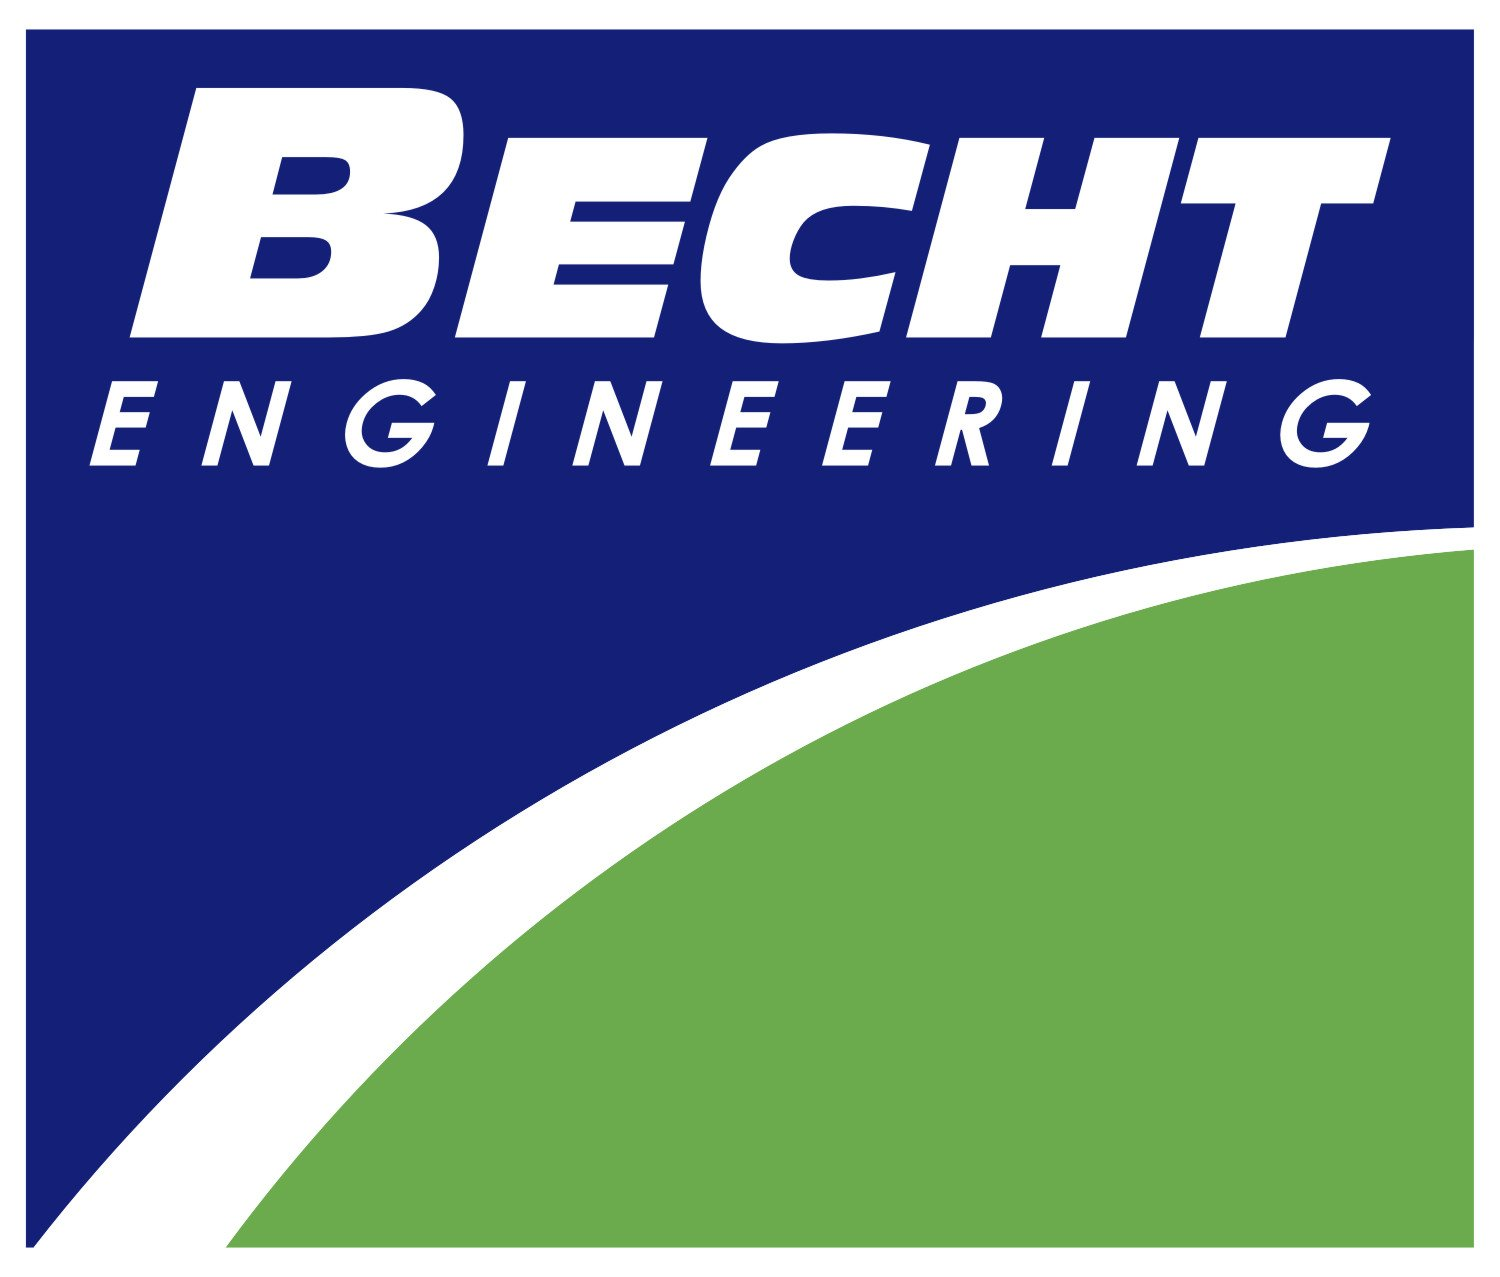 Becht Engineering's Dimensional Technology Services Division to Acquire Texas Gulf Coast Engineers